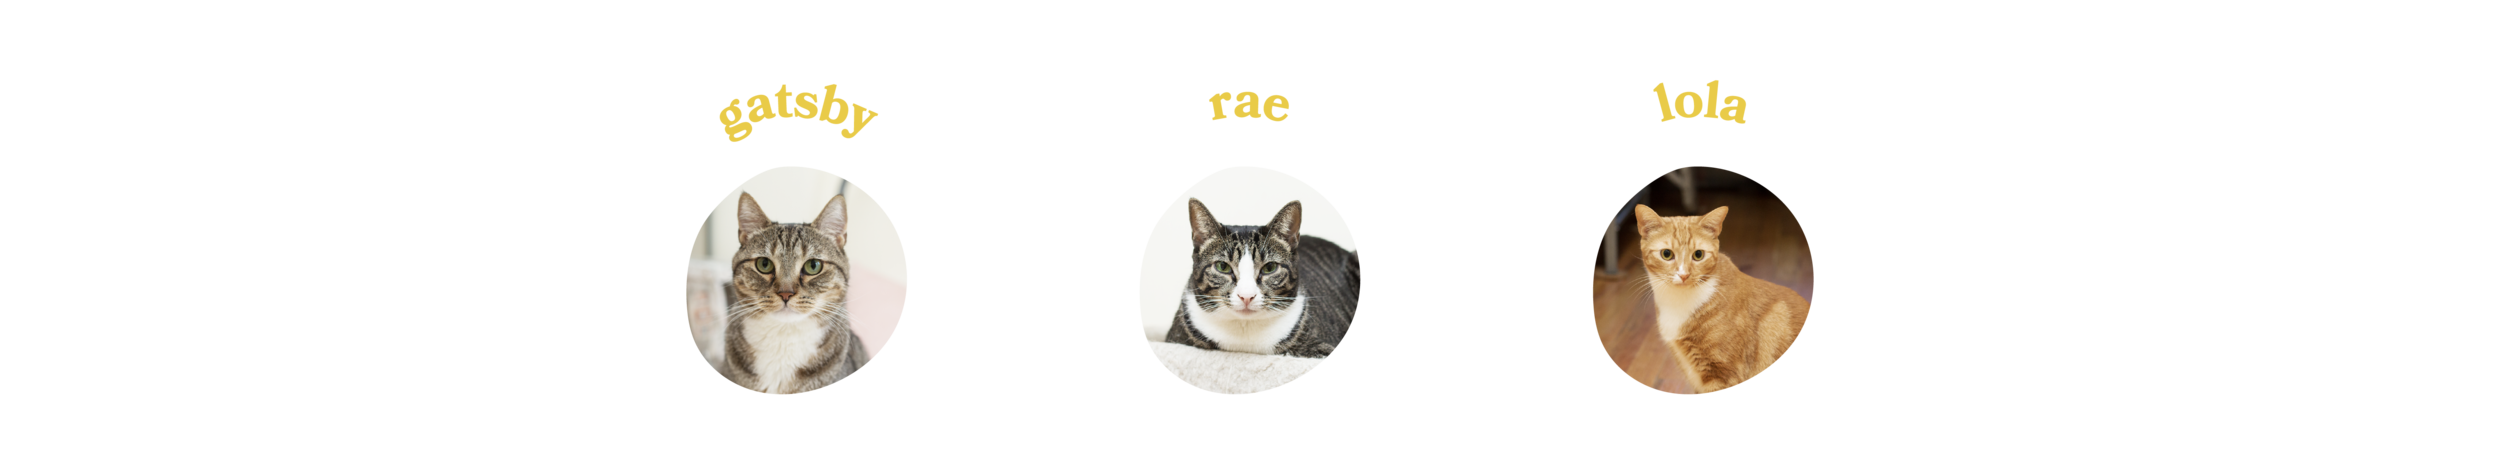 cats-11.png